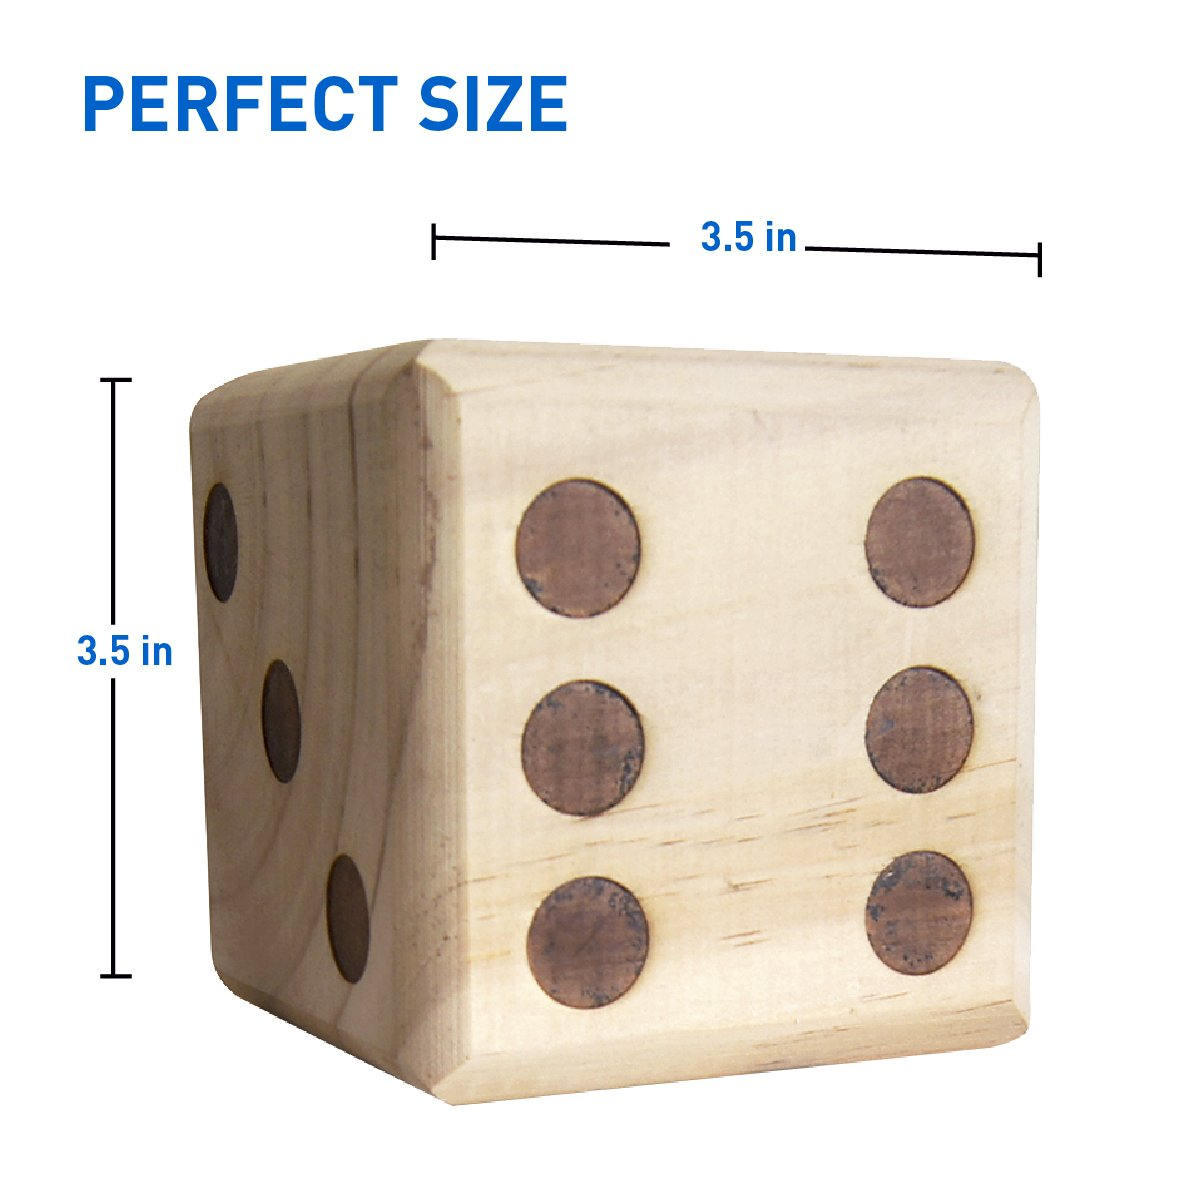 Easygoproducts Large Dice Game Giant Wooden Yard Dice Set Dice